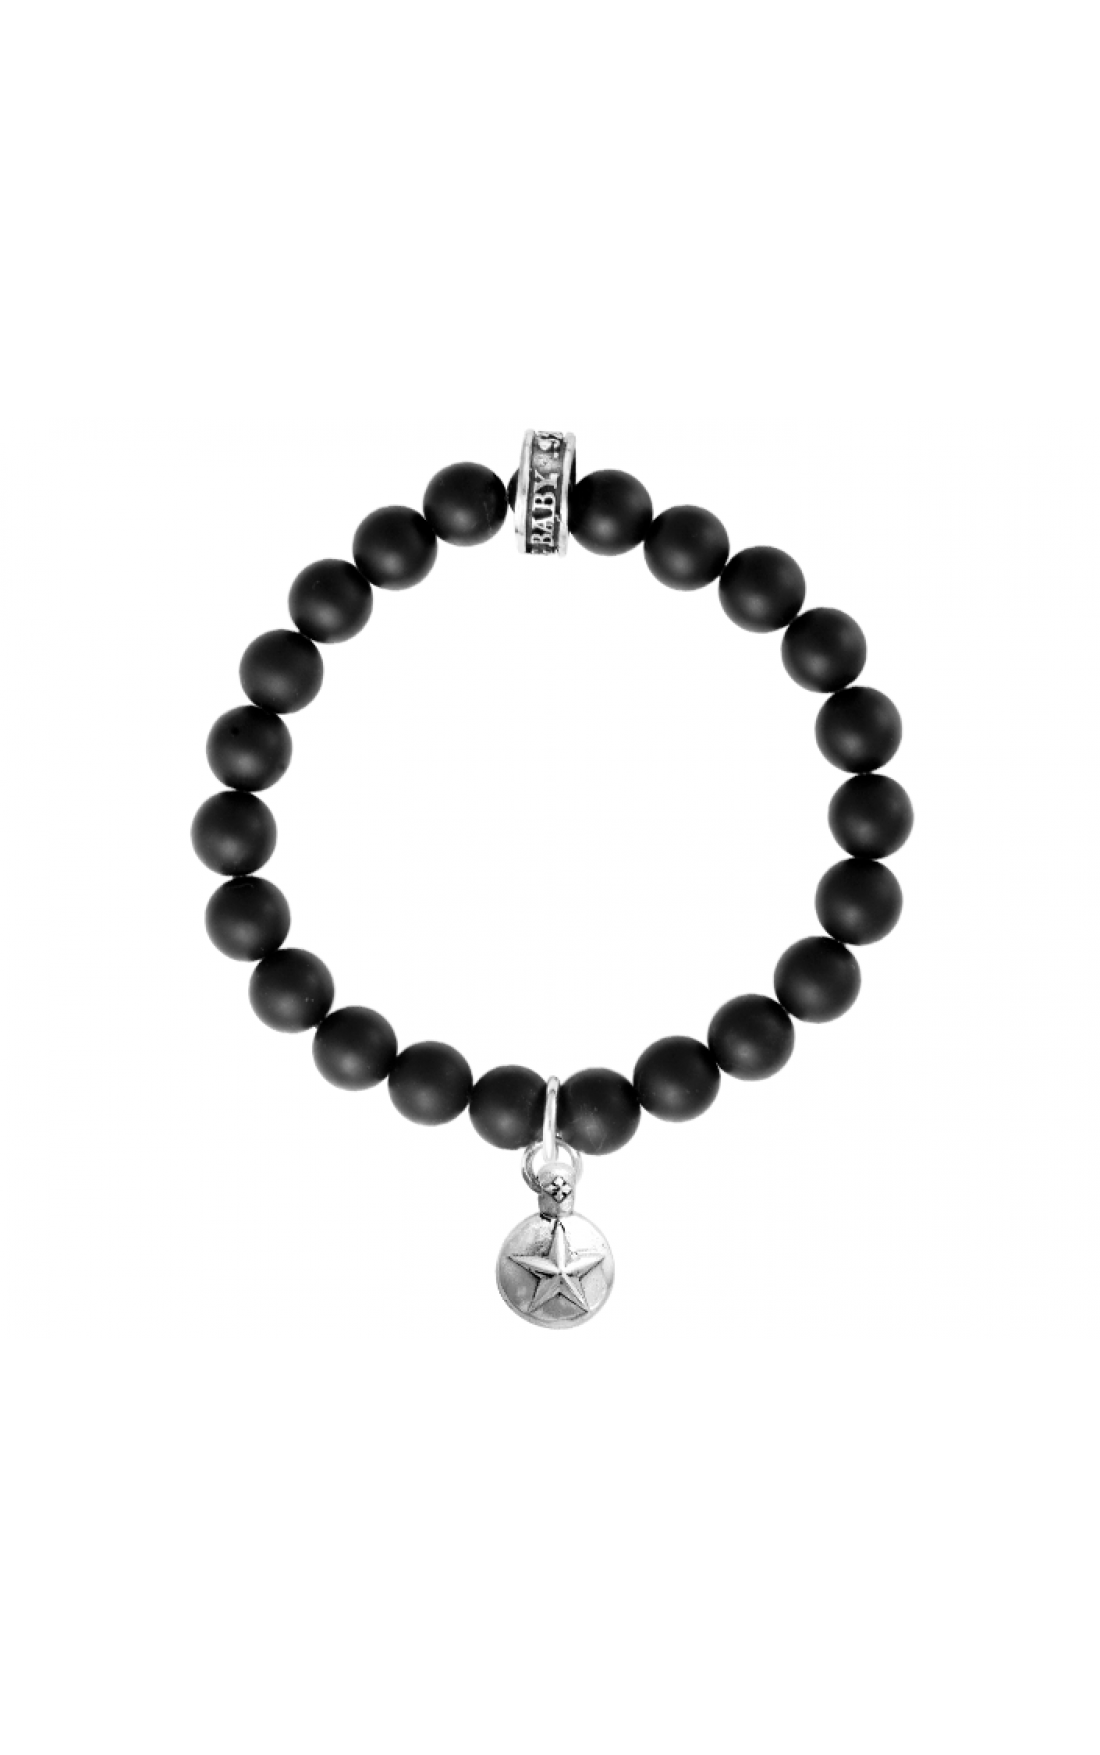 King-Baby-Jewellery-K40-5249-Black-Onyx-Bead-&-Silver-Star-Pendant-Bracelet-Boudi-UK